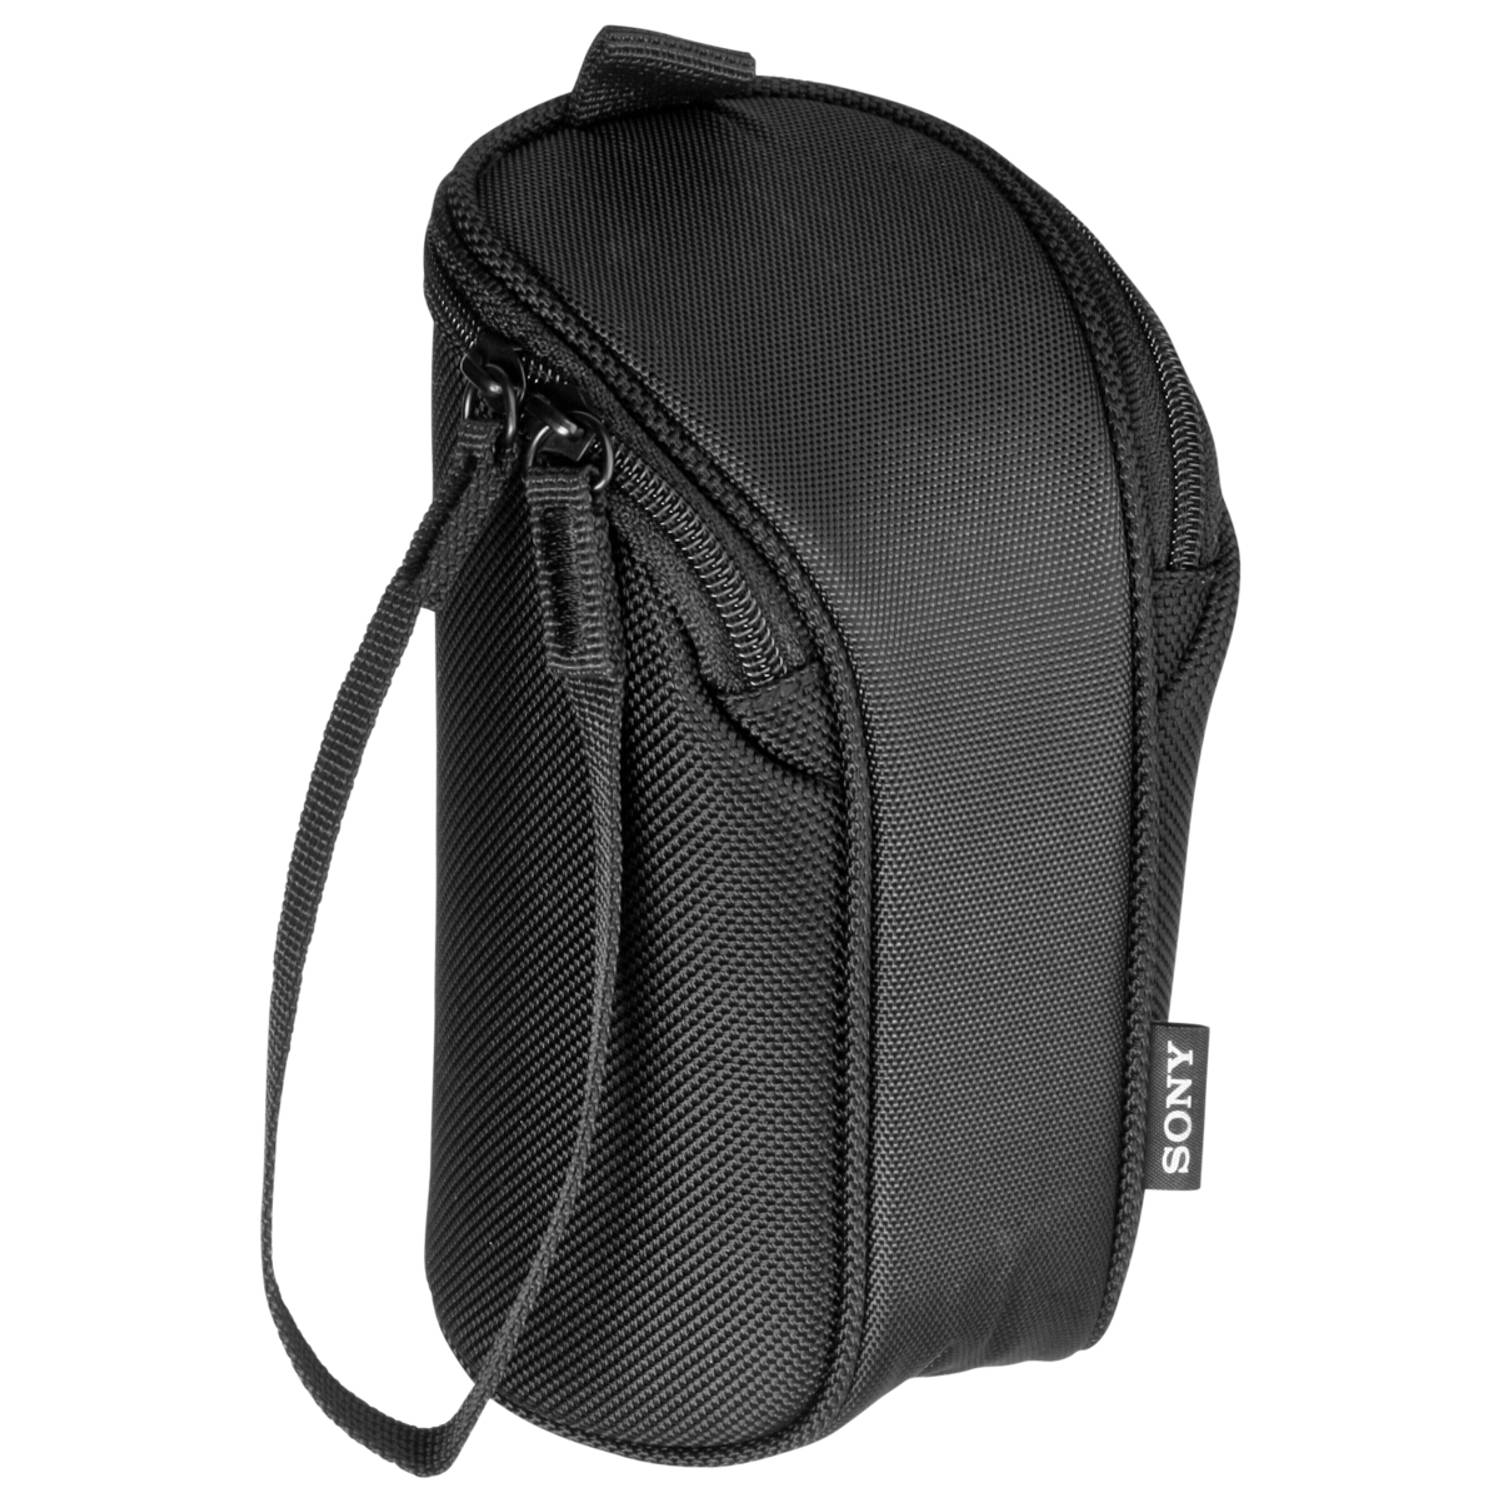 Sony Bag Lcsbbjb Black